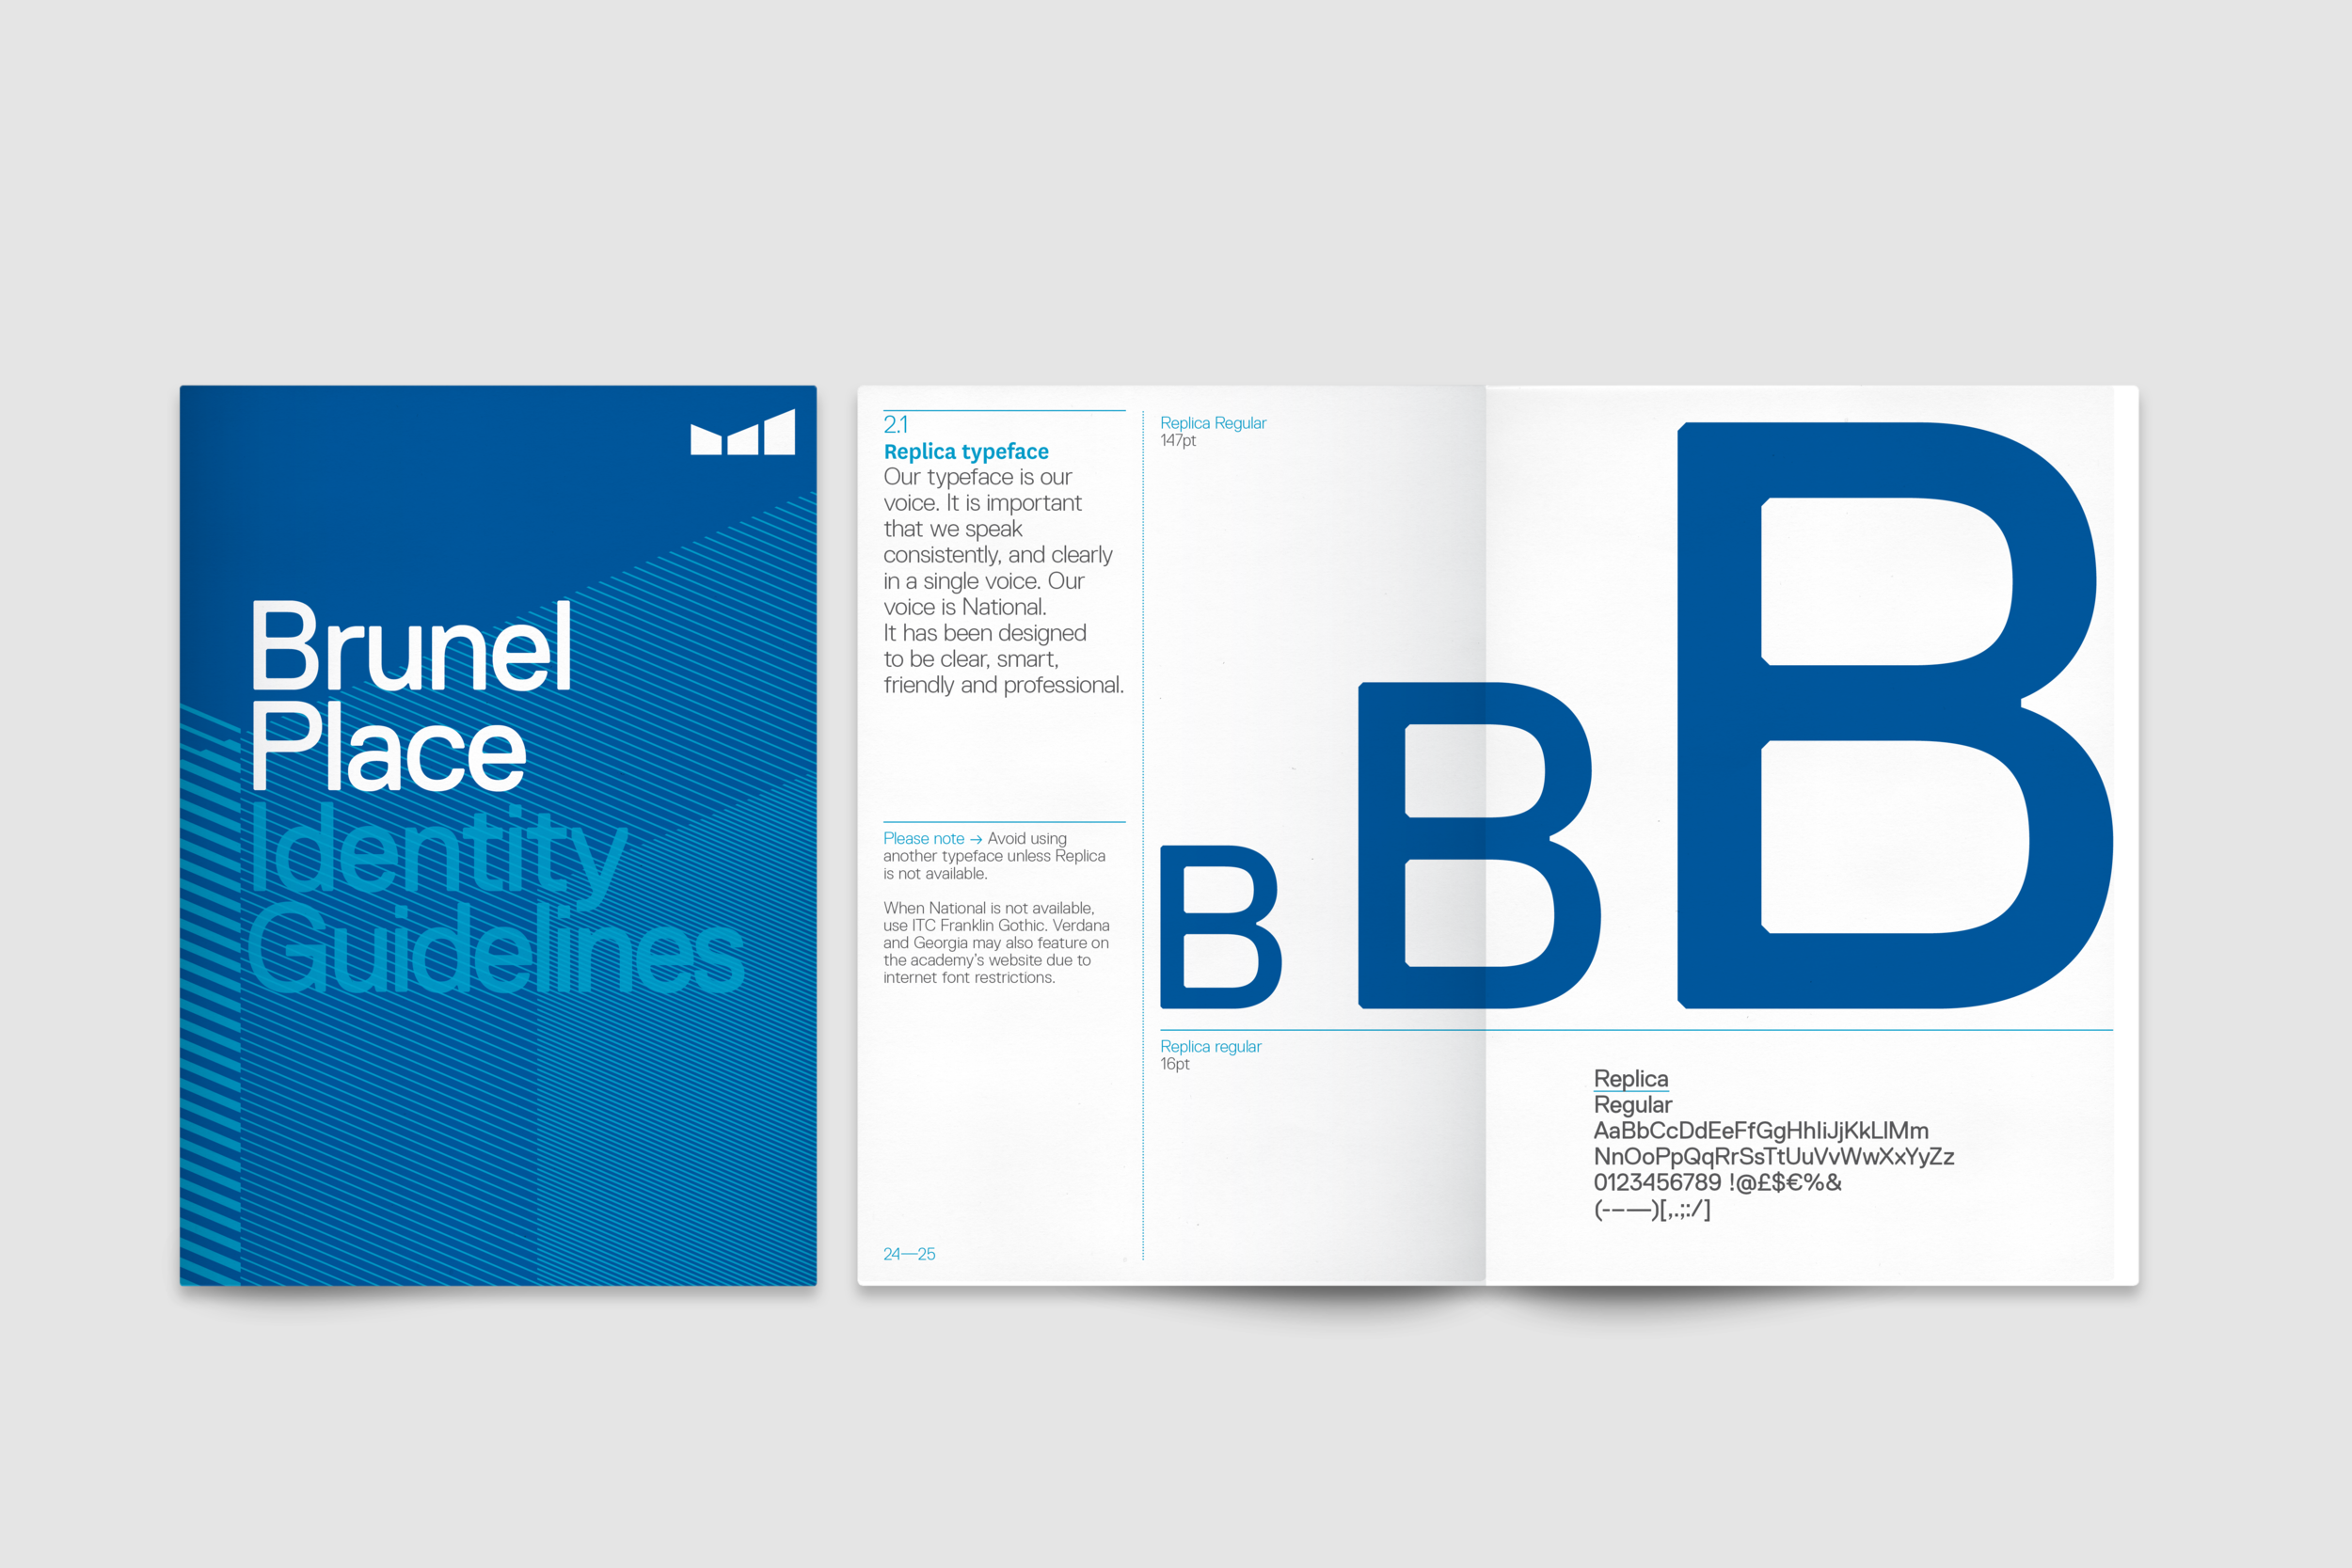 Brunel_Place_identity8.png